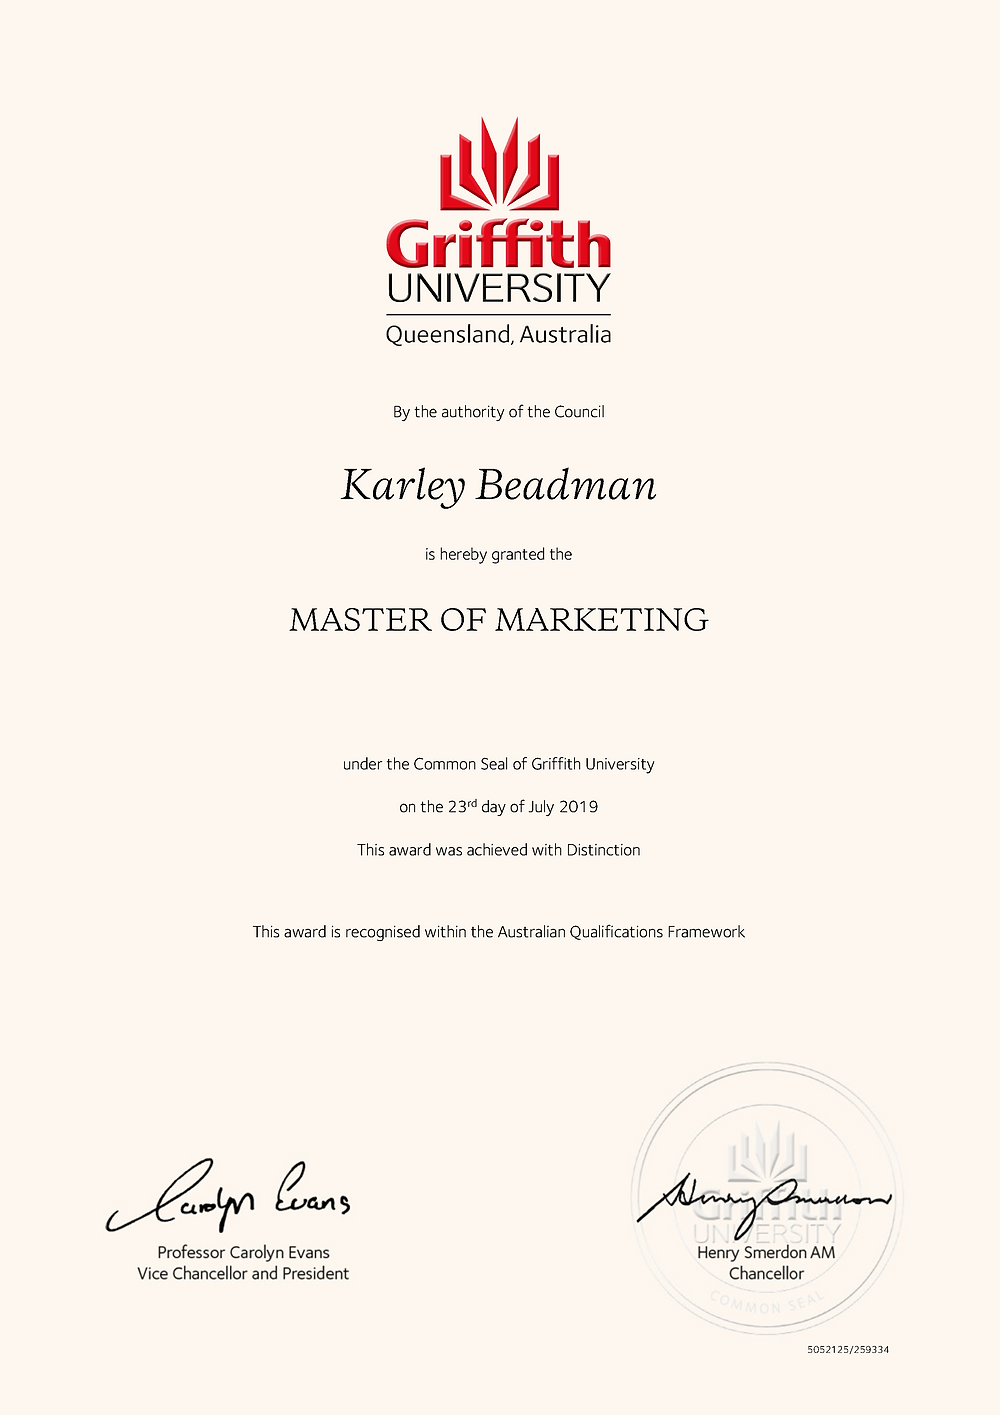 Master of Marketing with Distinction from Griffith University.